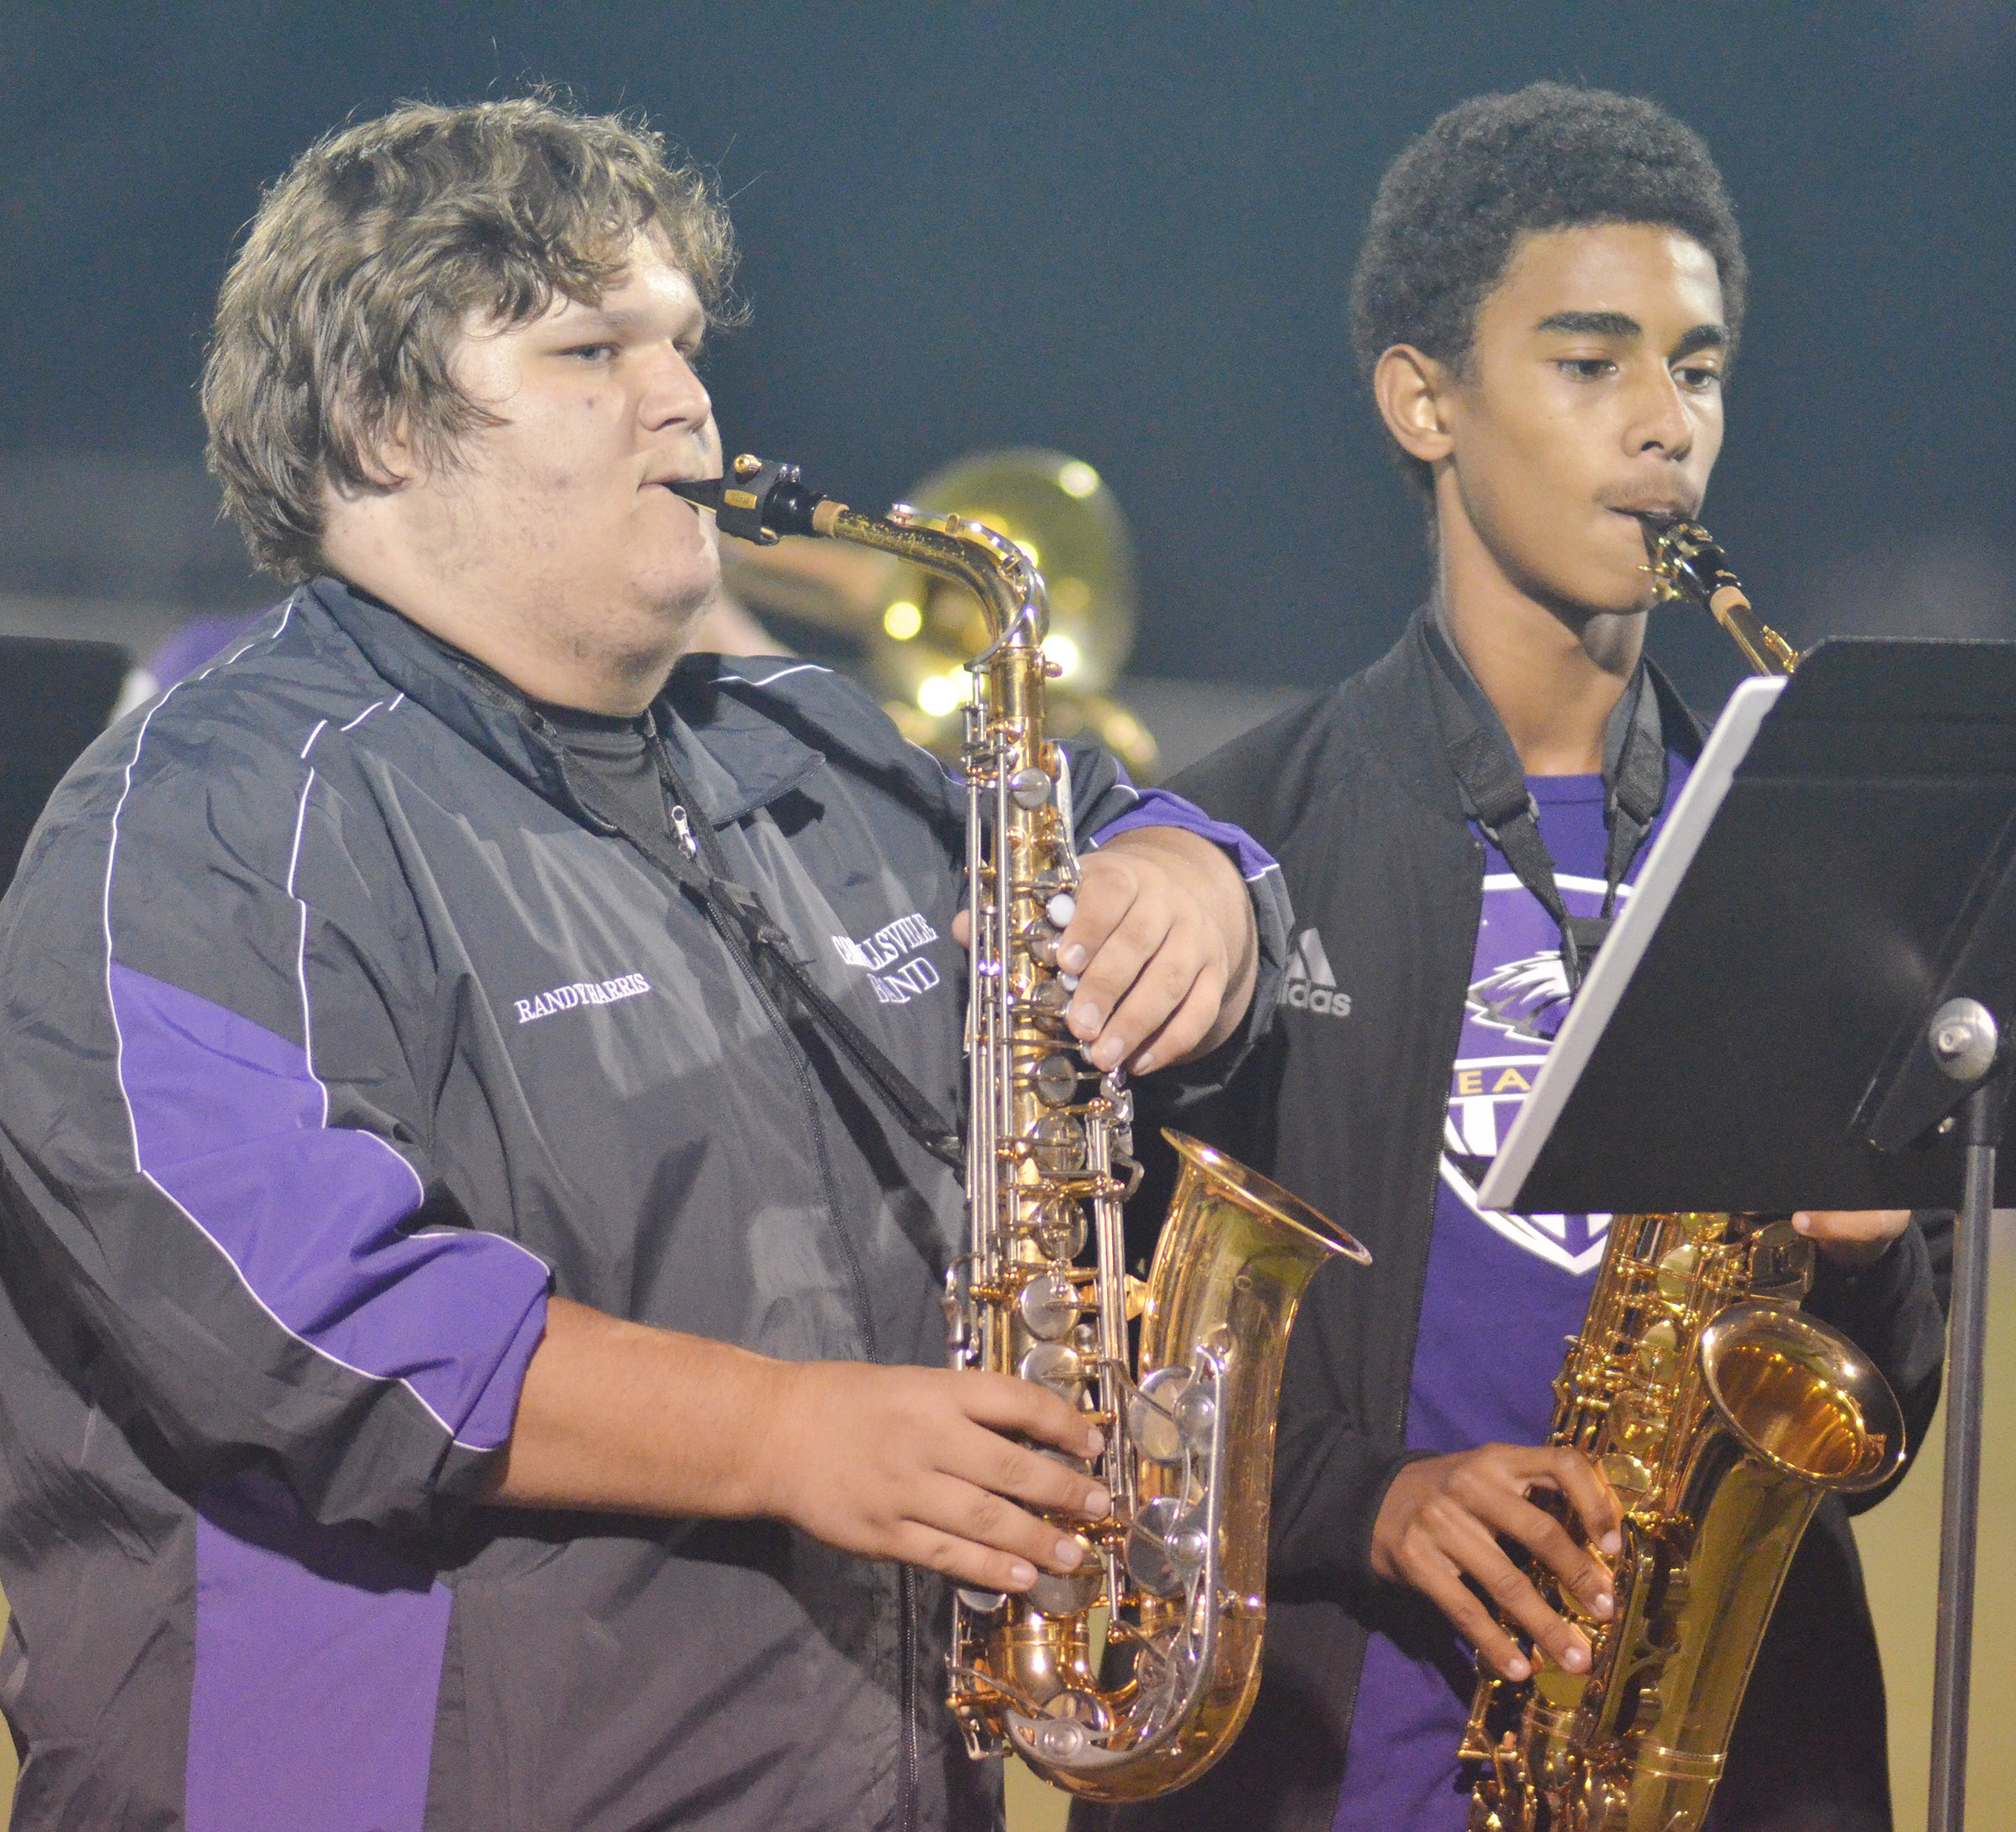 CHS junior Randy Harris, at left, and sophomore David Silva play saxophone during halftime.